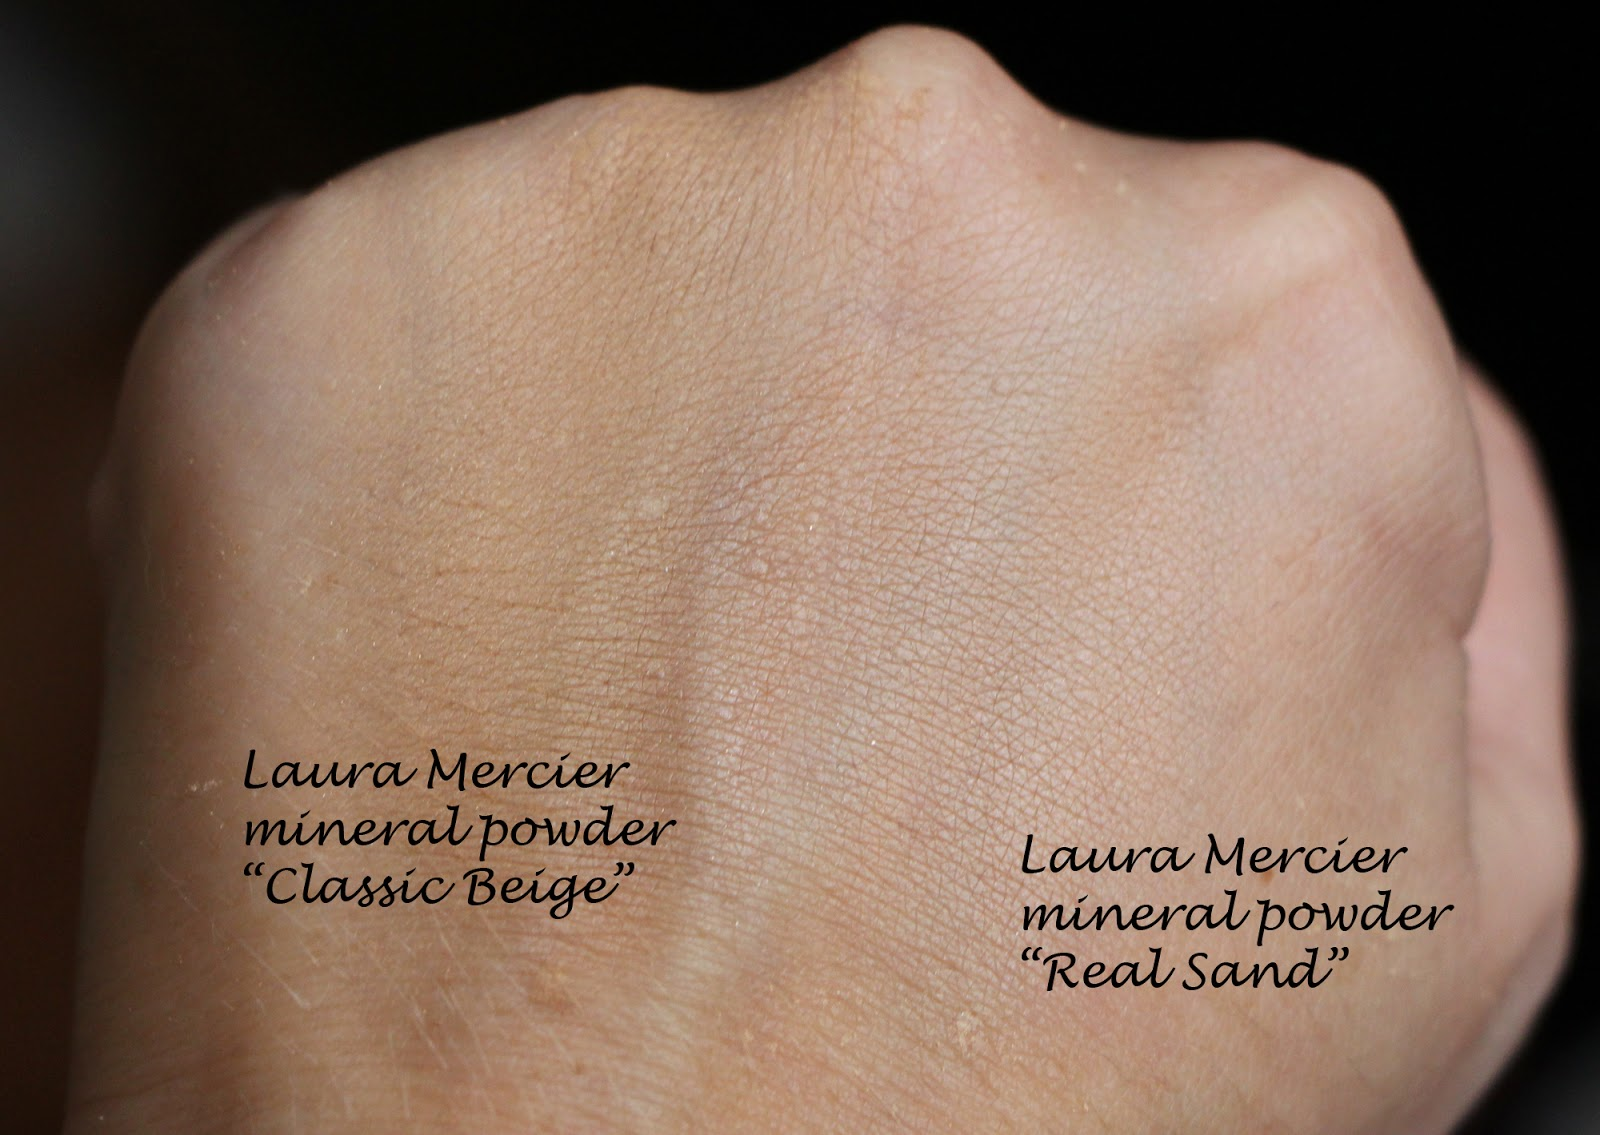 Mineral Powder by Laura Mercier #3